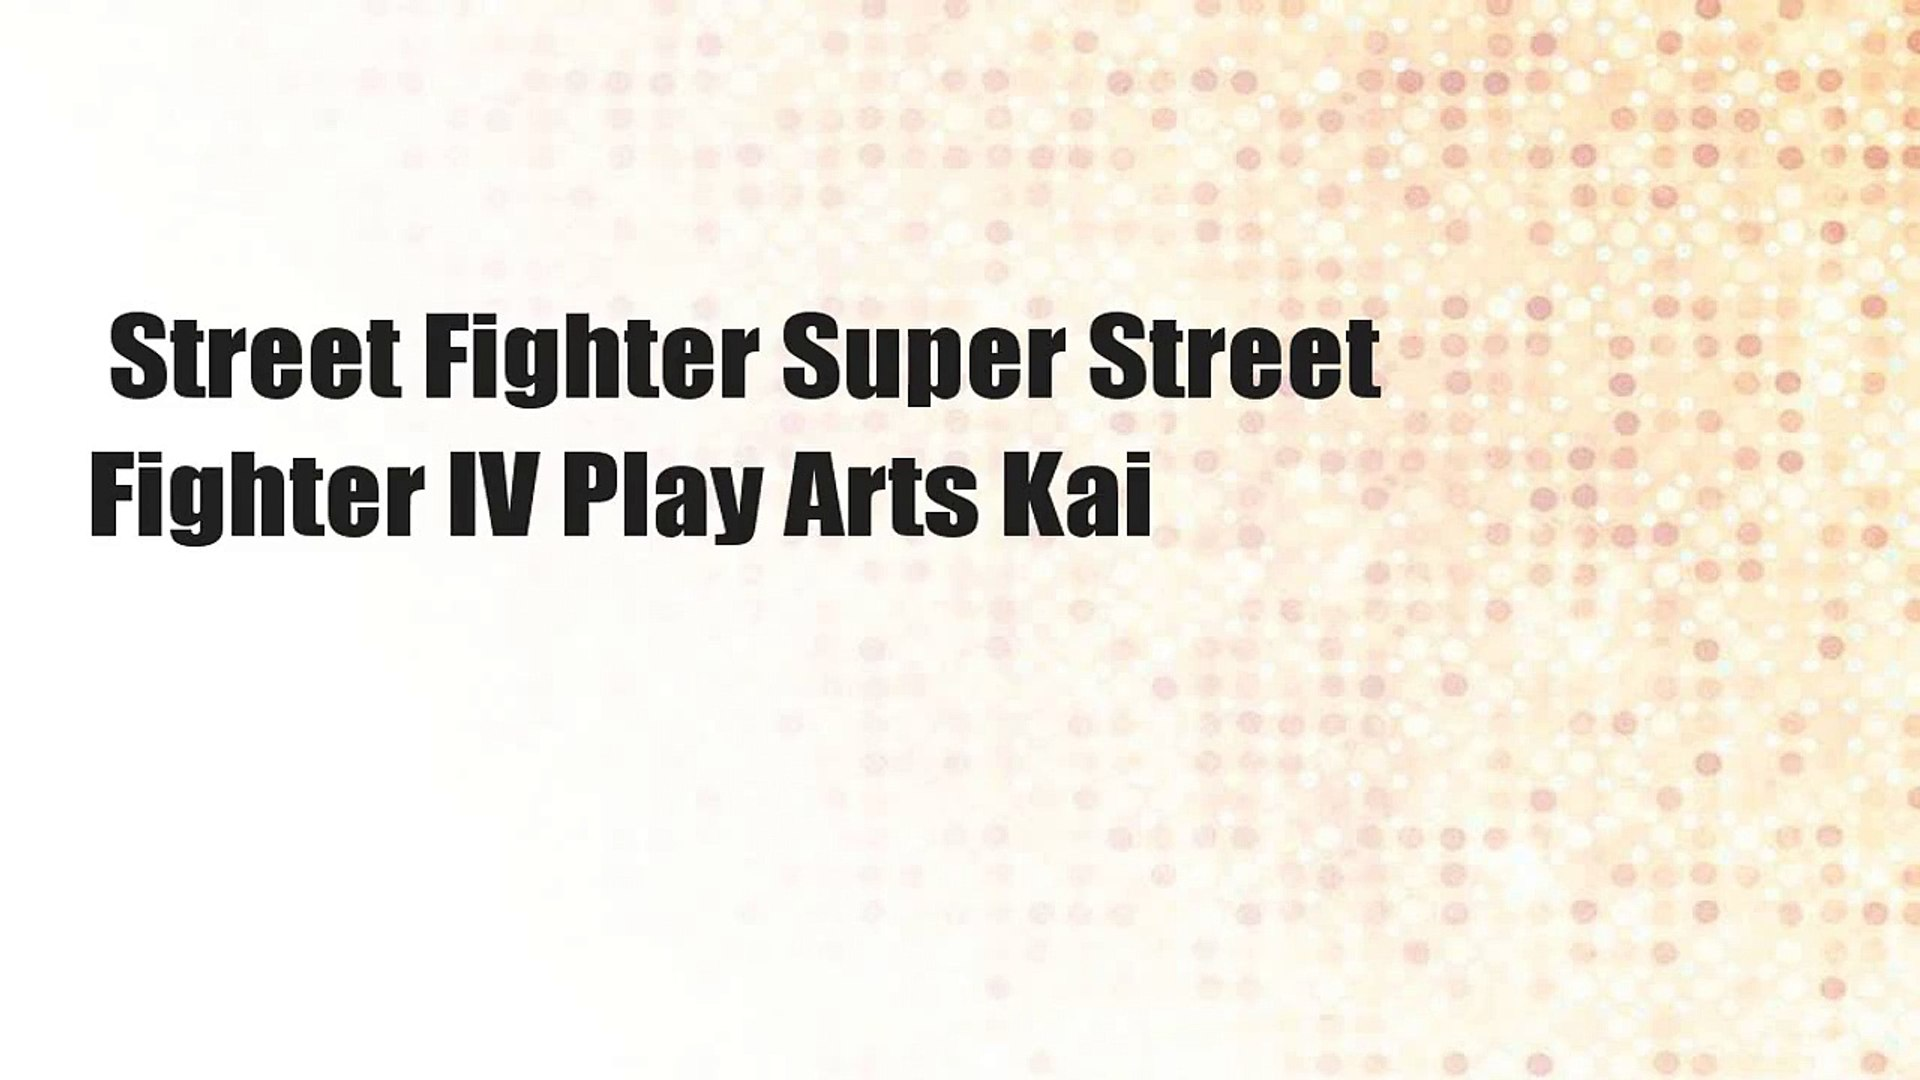 Street Fighter Super Street Fighter IV Play Arts Kai